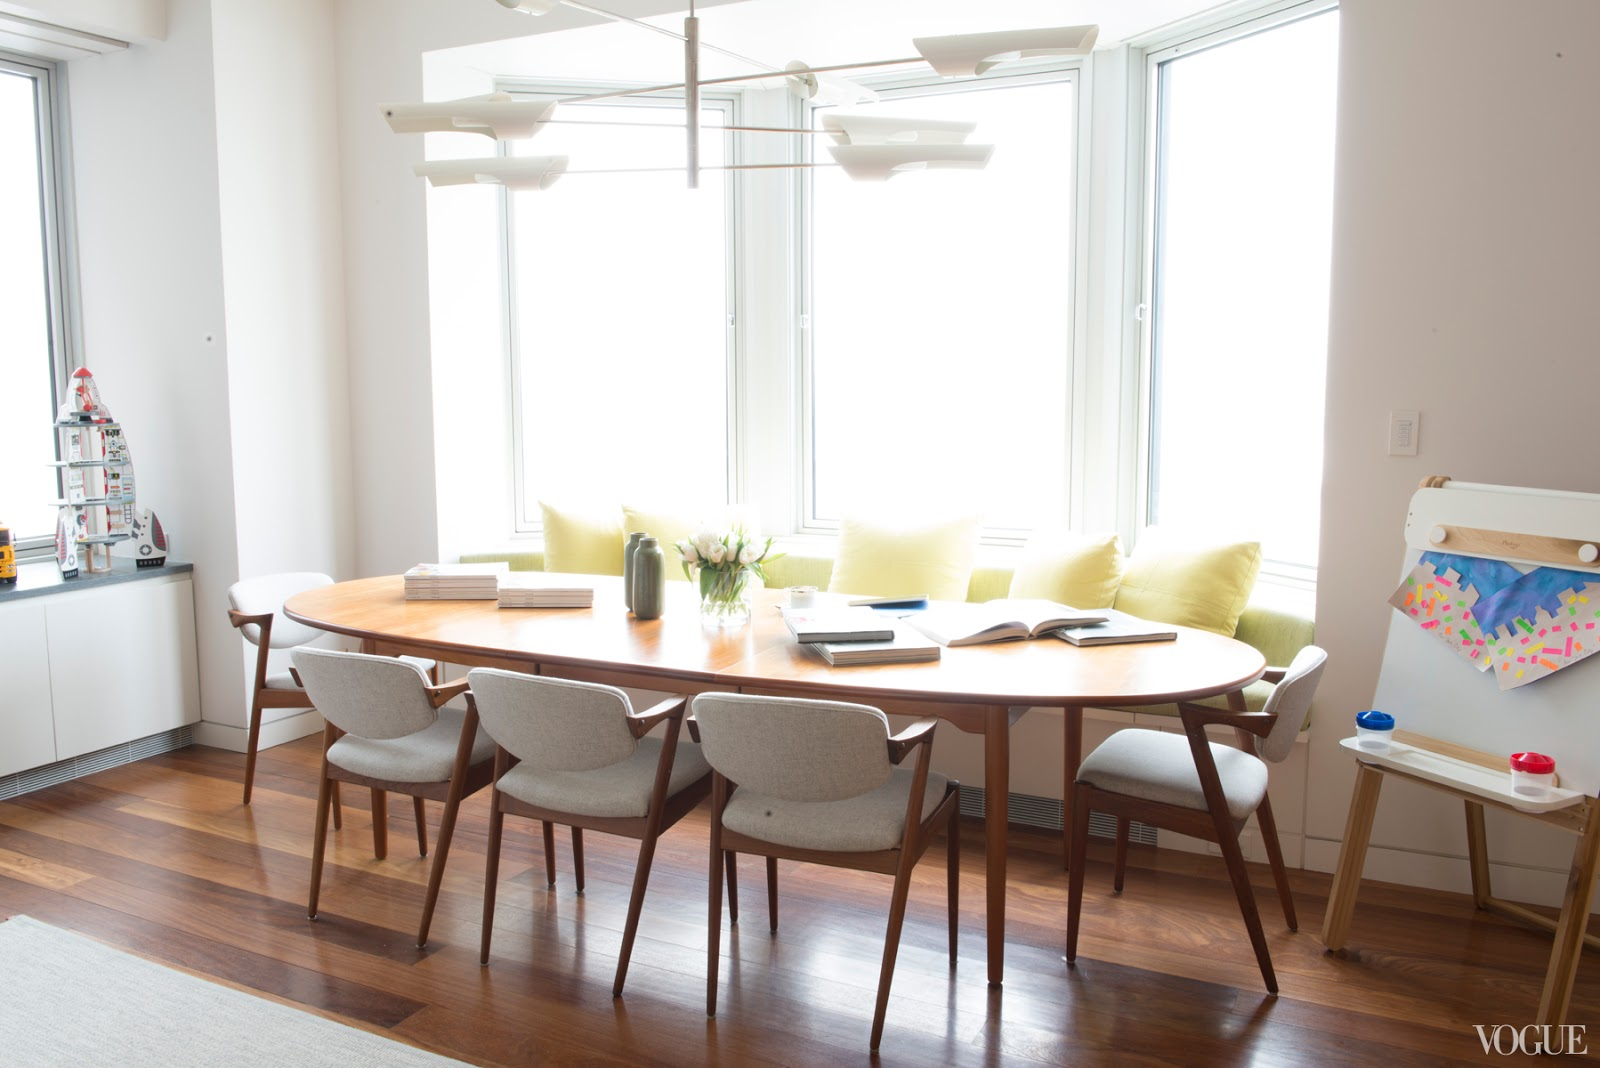 dining room oval table mid century modern david weeks chandelier lighting banquette bench window seating family room open floor plan cococozy